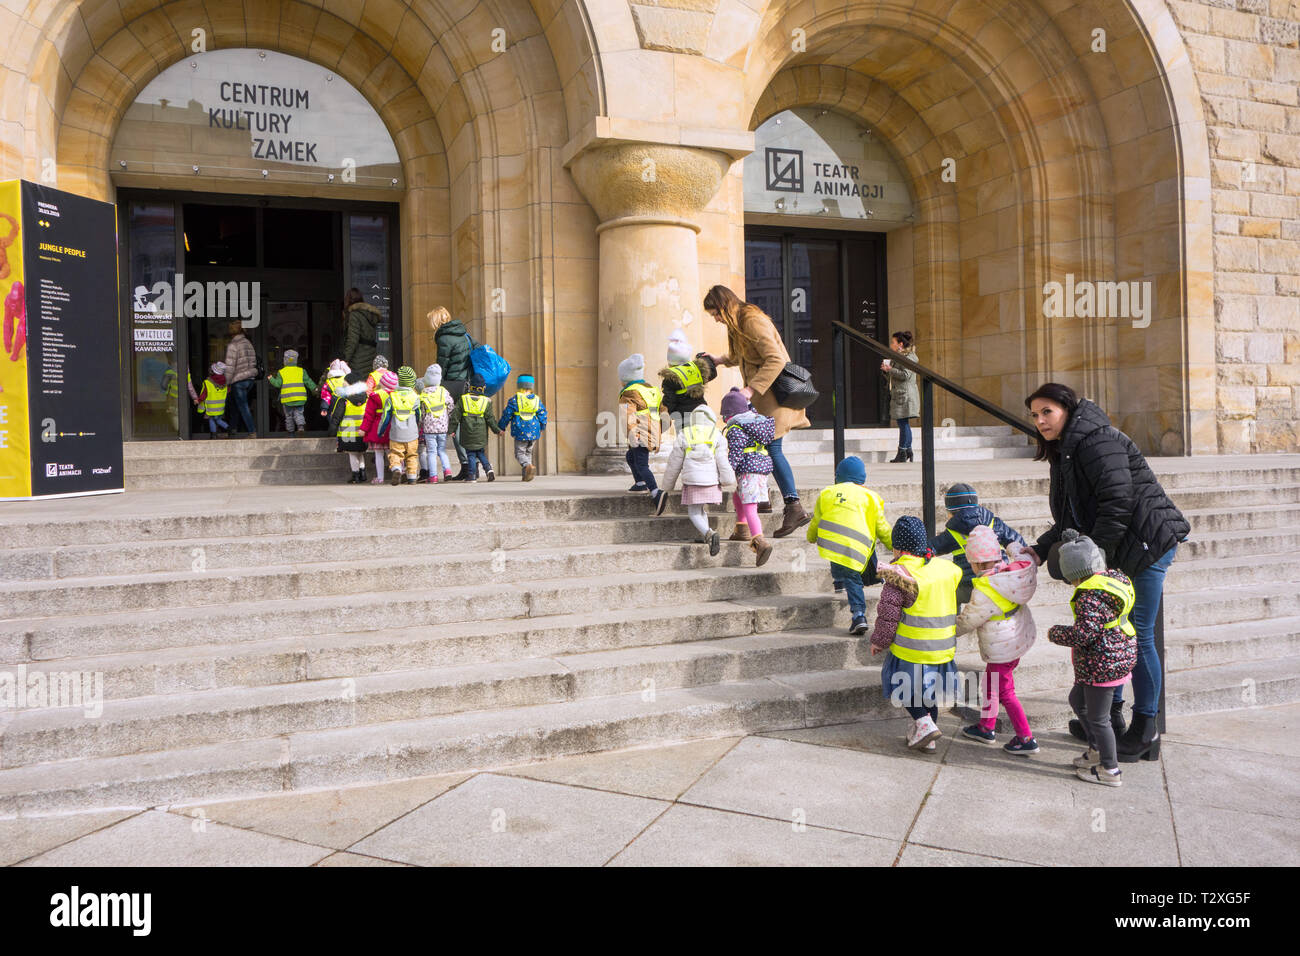 Young school children boys and girls wearing high vis jackets and clothing being led in a crocodile by teachers into the theater in Poznan Poland - Stock Image